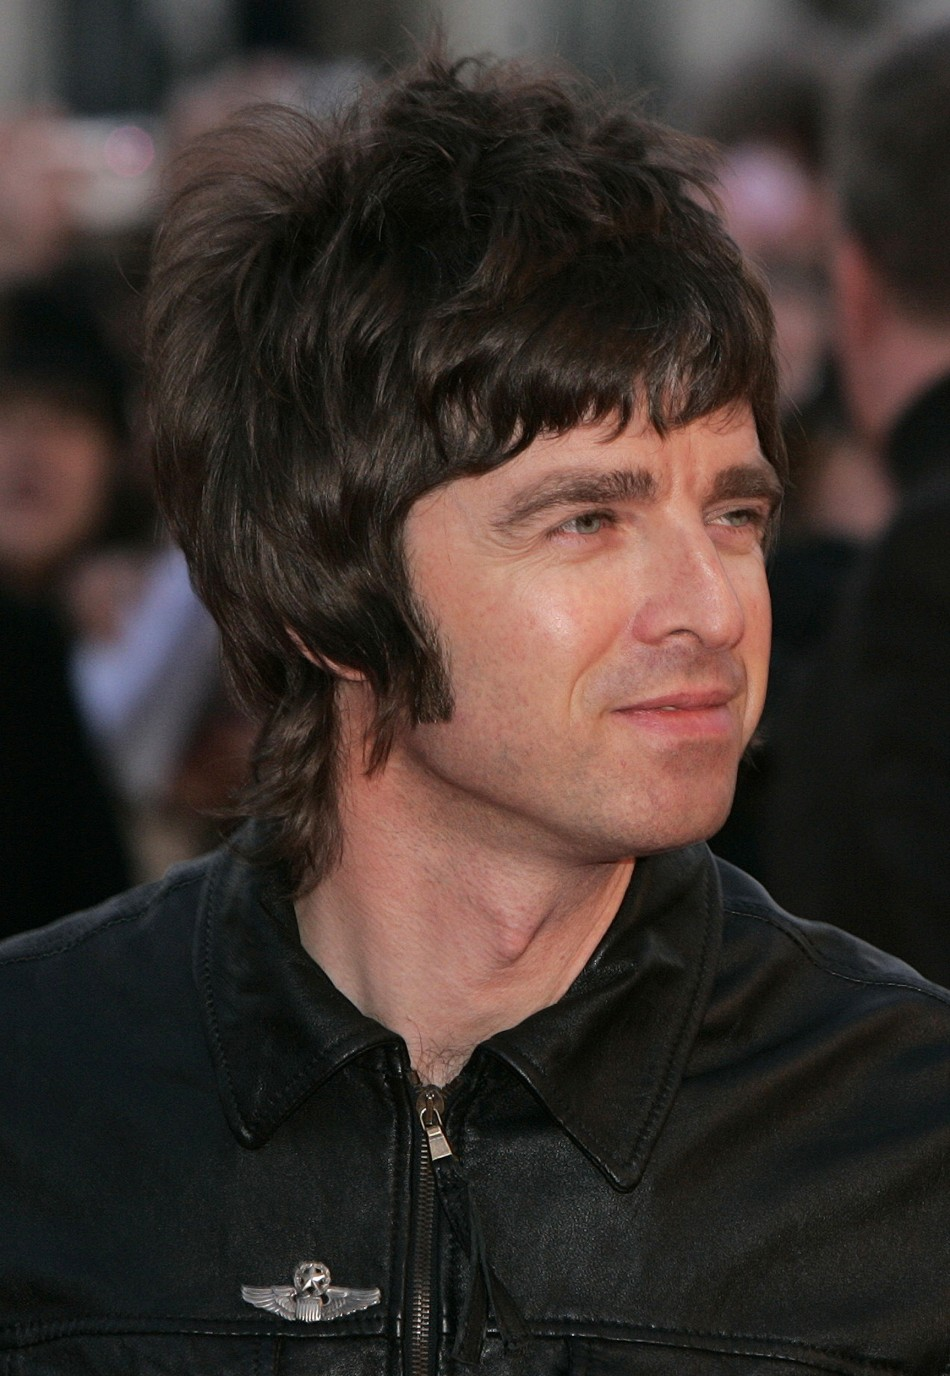 Top 10 British Singers in 'Class of 2011' - Noel Gallagher